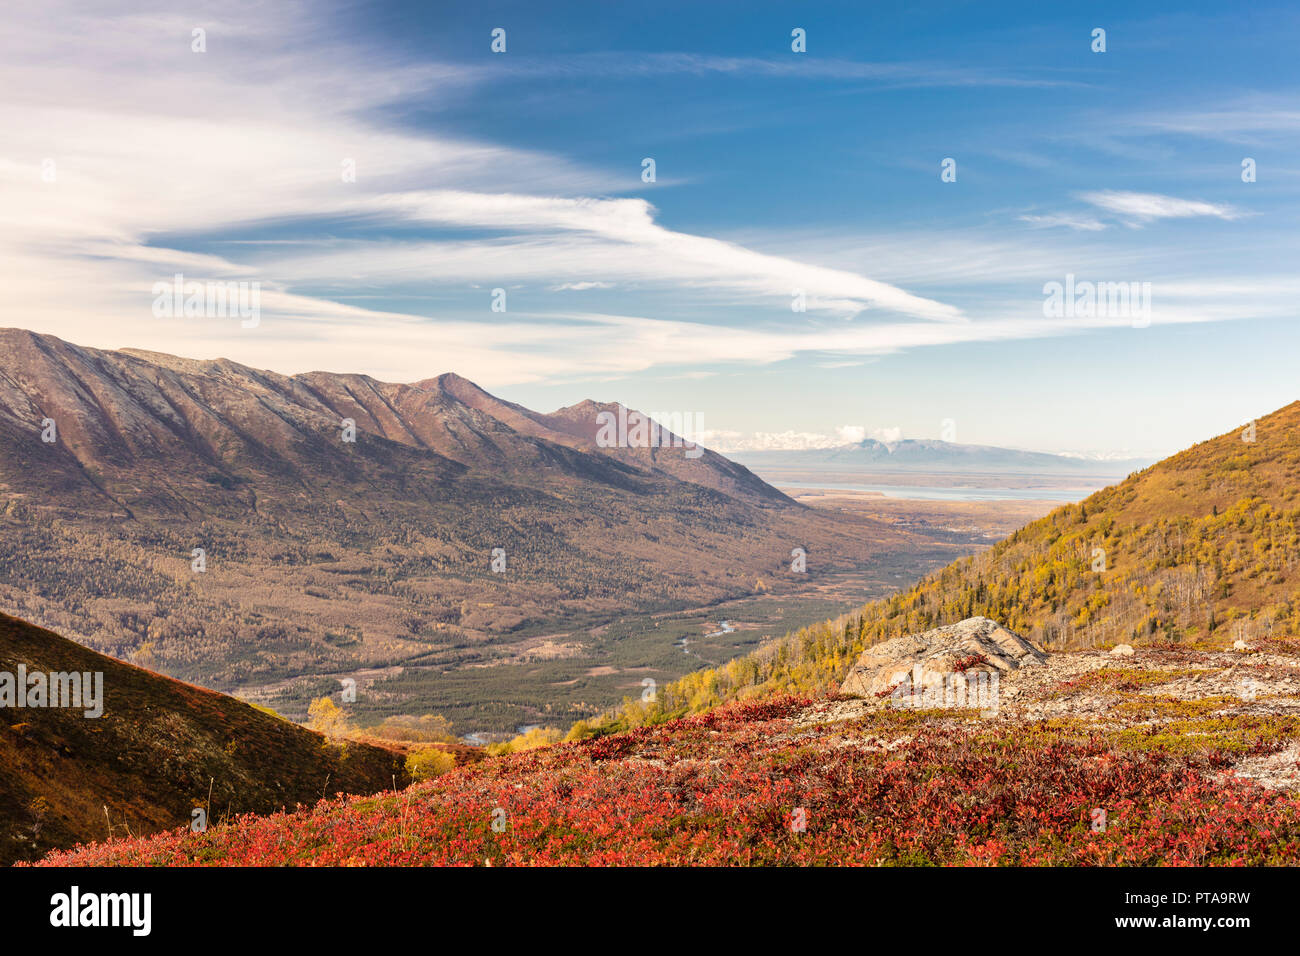 Peak autumn colors at Ram Valley in Chugach State Park in Southcentral Alaska. - Stock Image